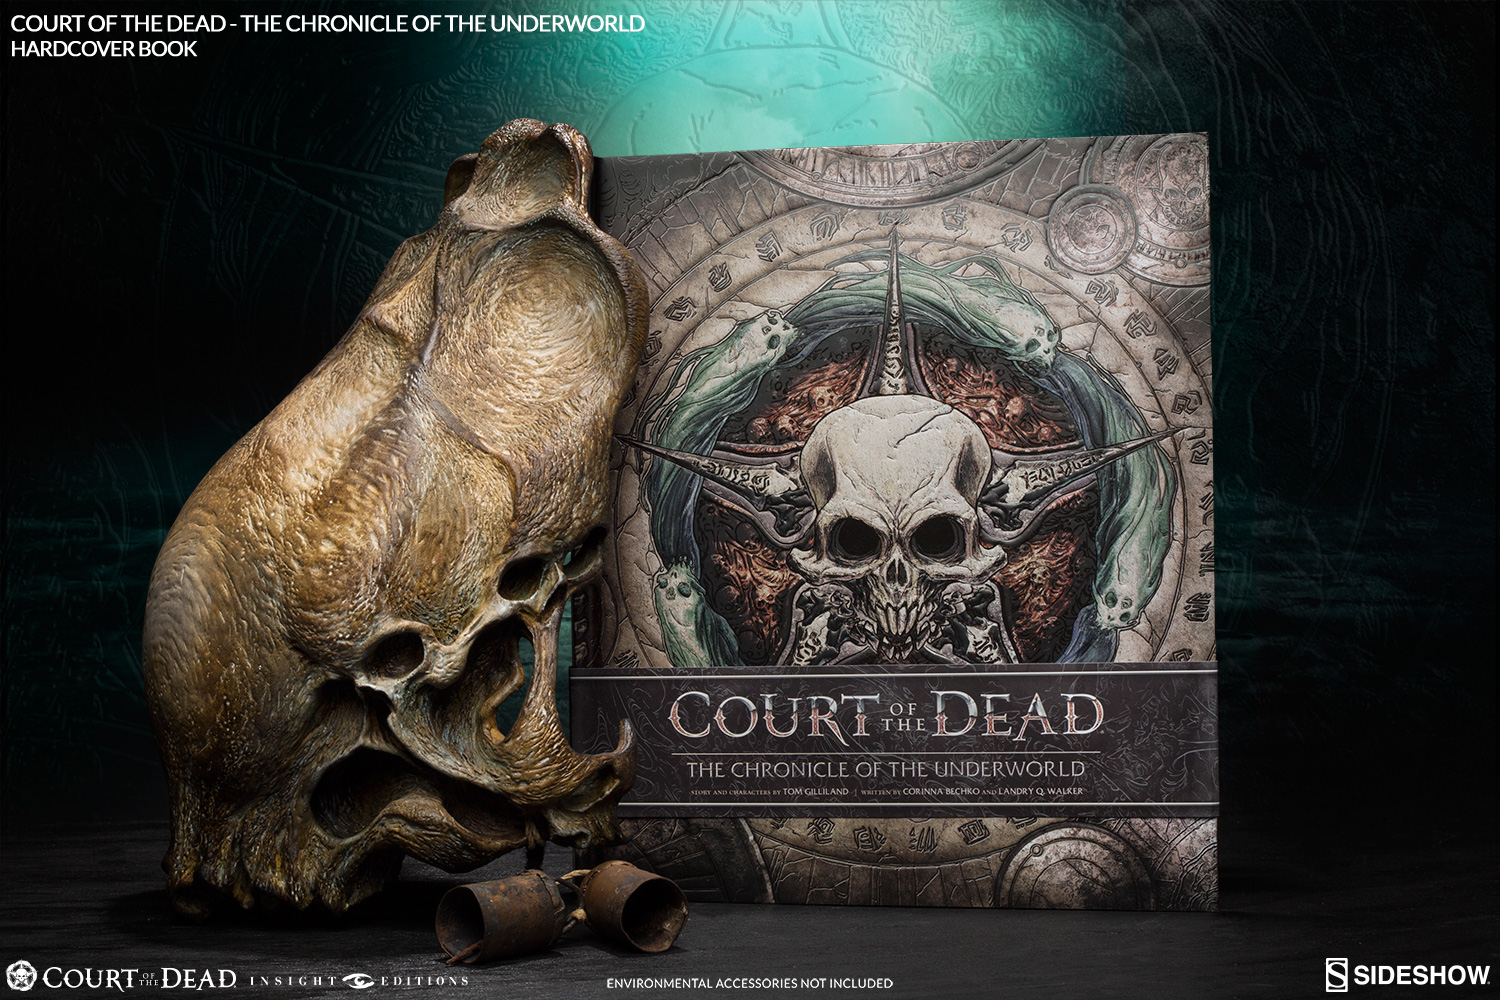 court of the dead book